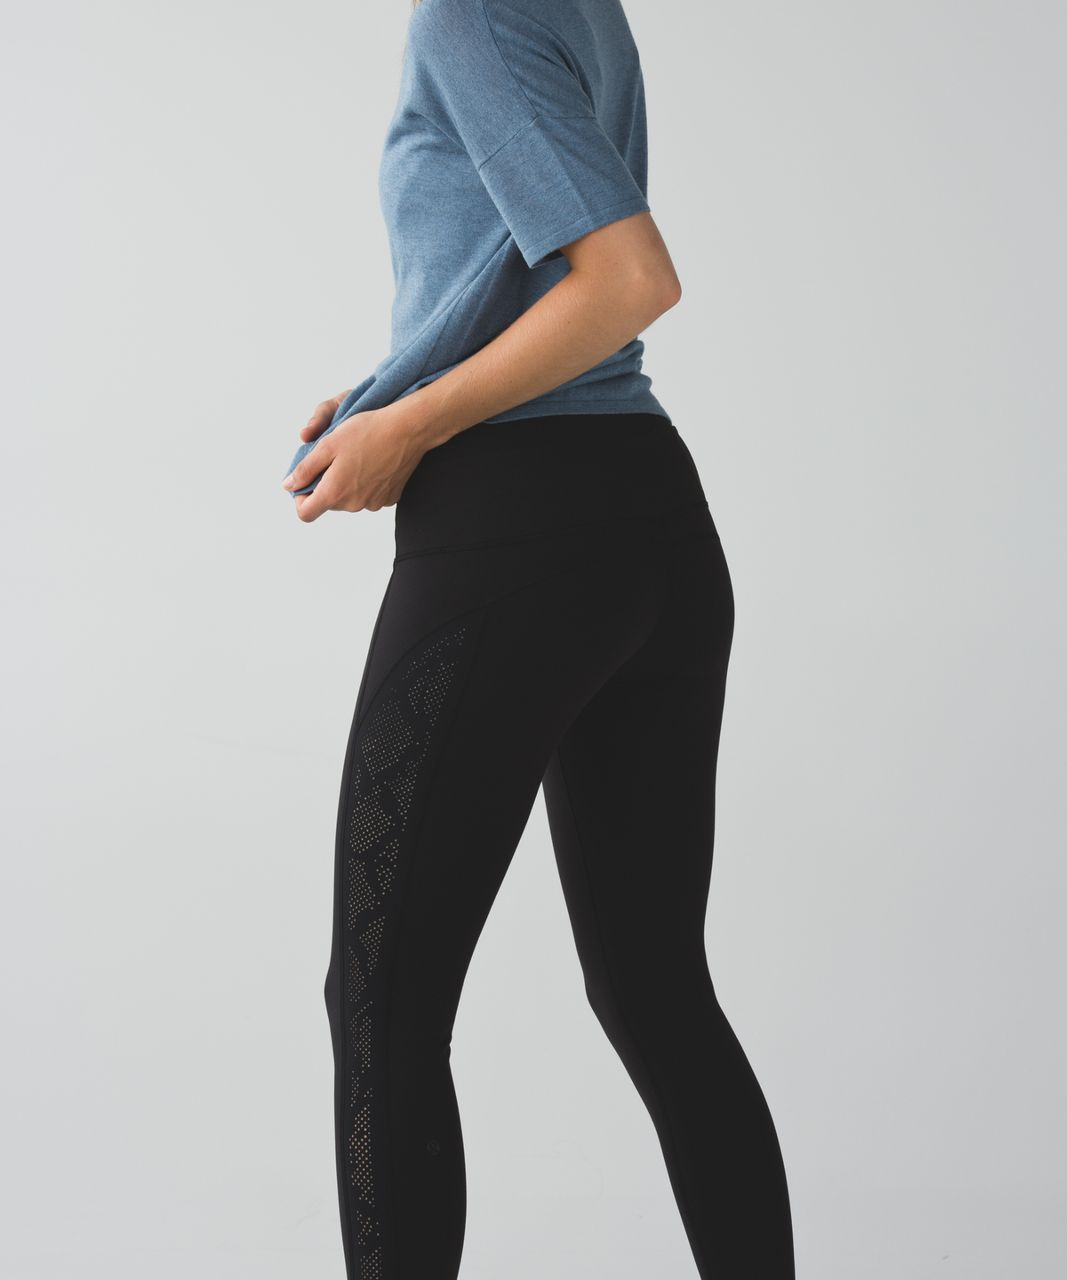 3dfe9afee Lululemon Beyond Boundaries Pant - Black - lulu fanatics